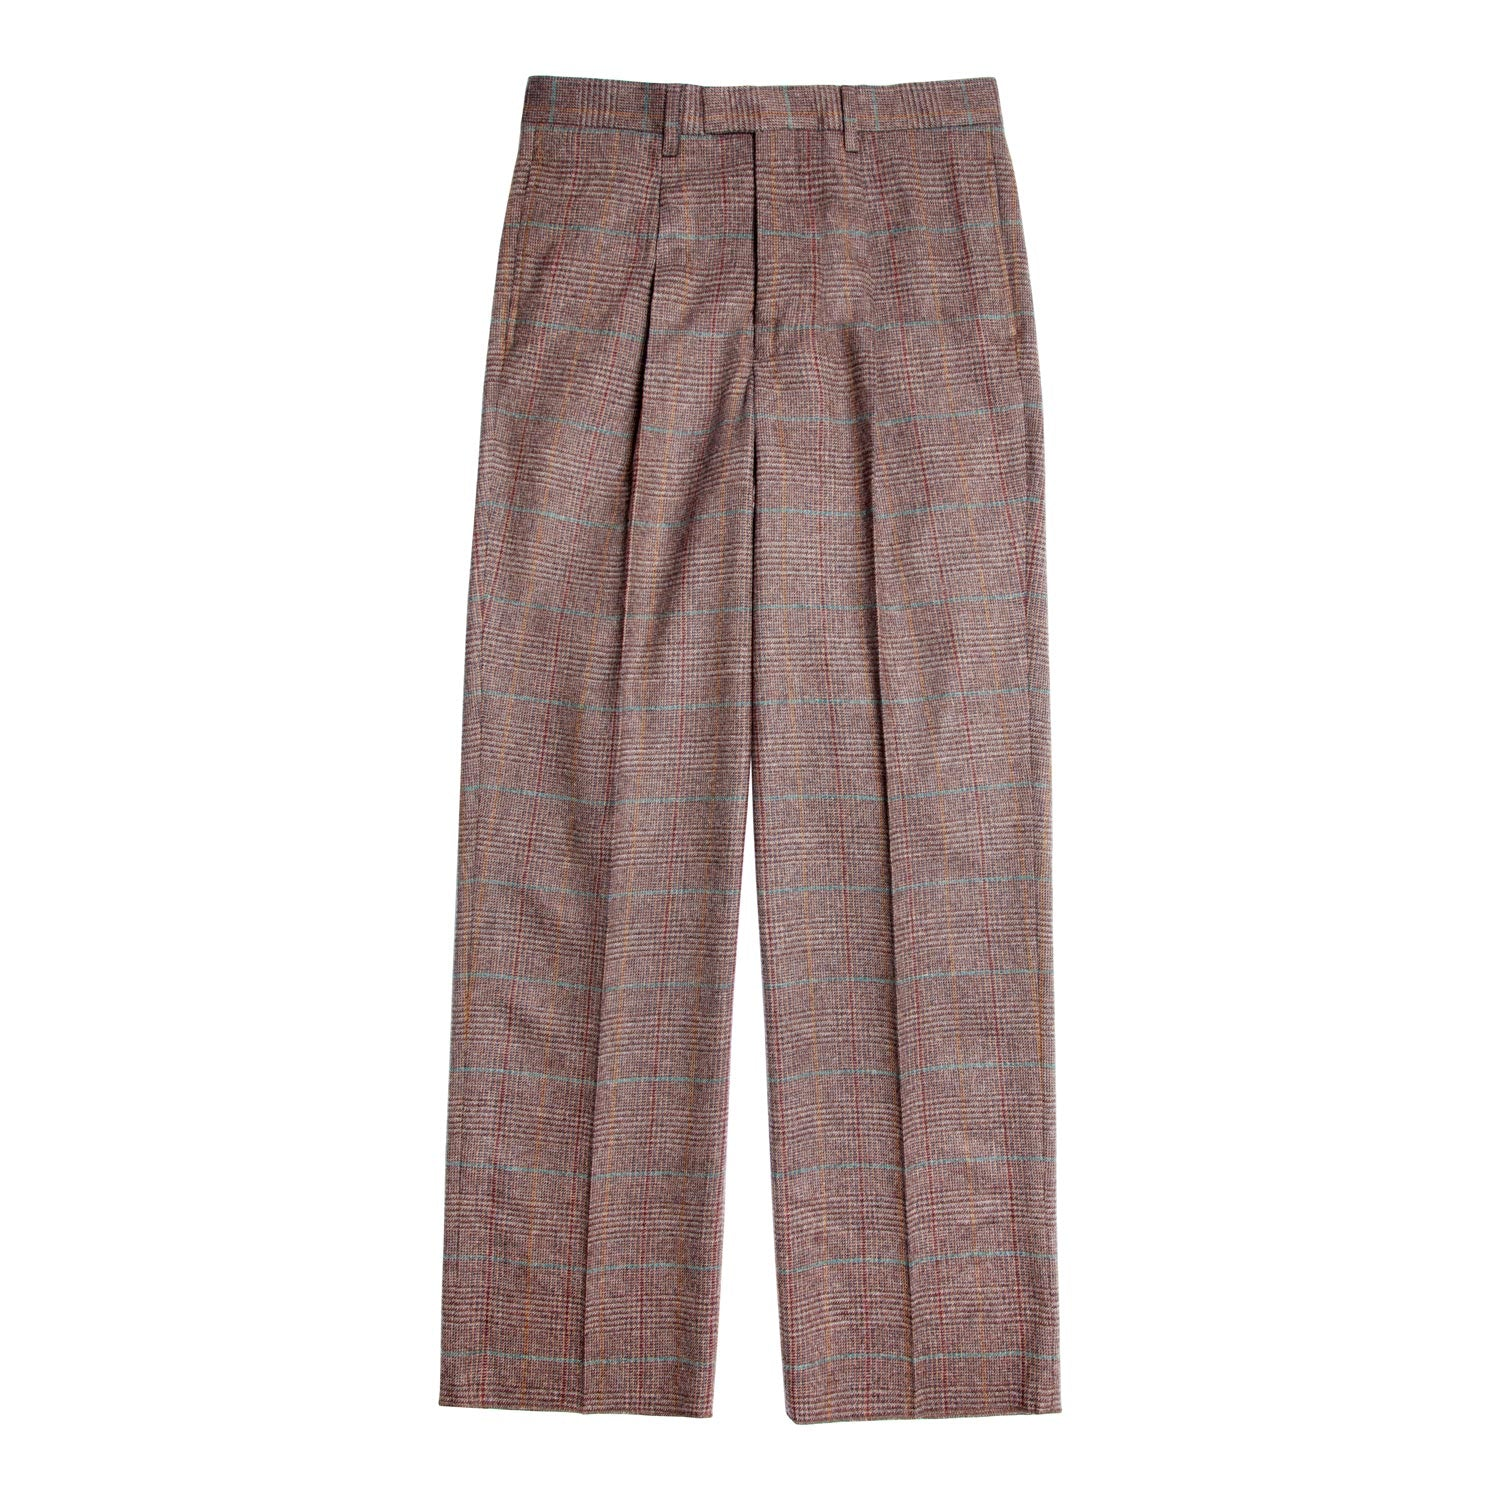 Wool Cashmere Single-Pleat Suit Pant